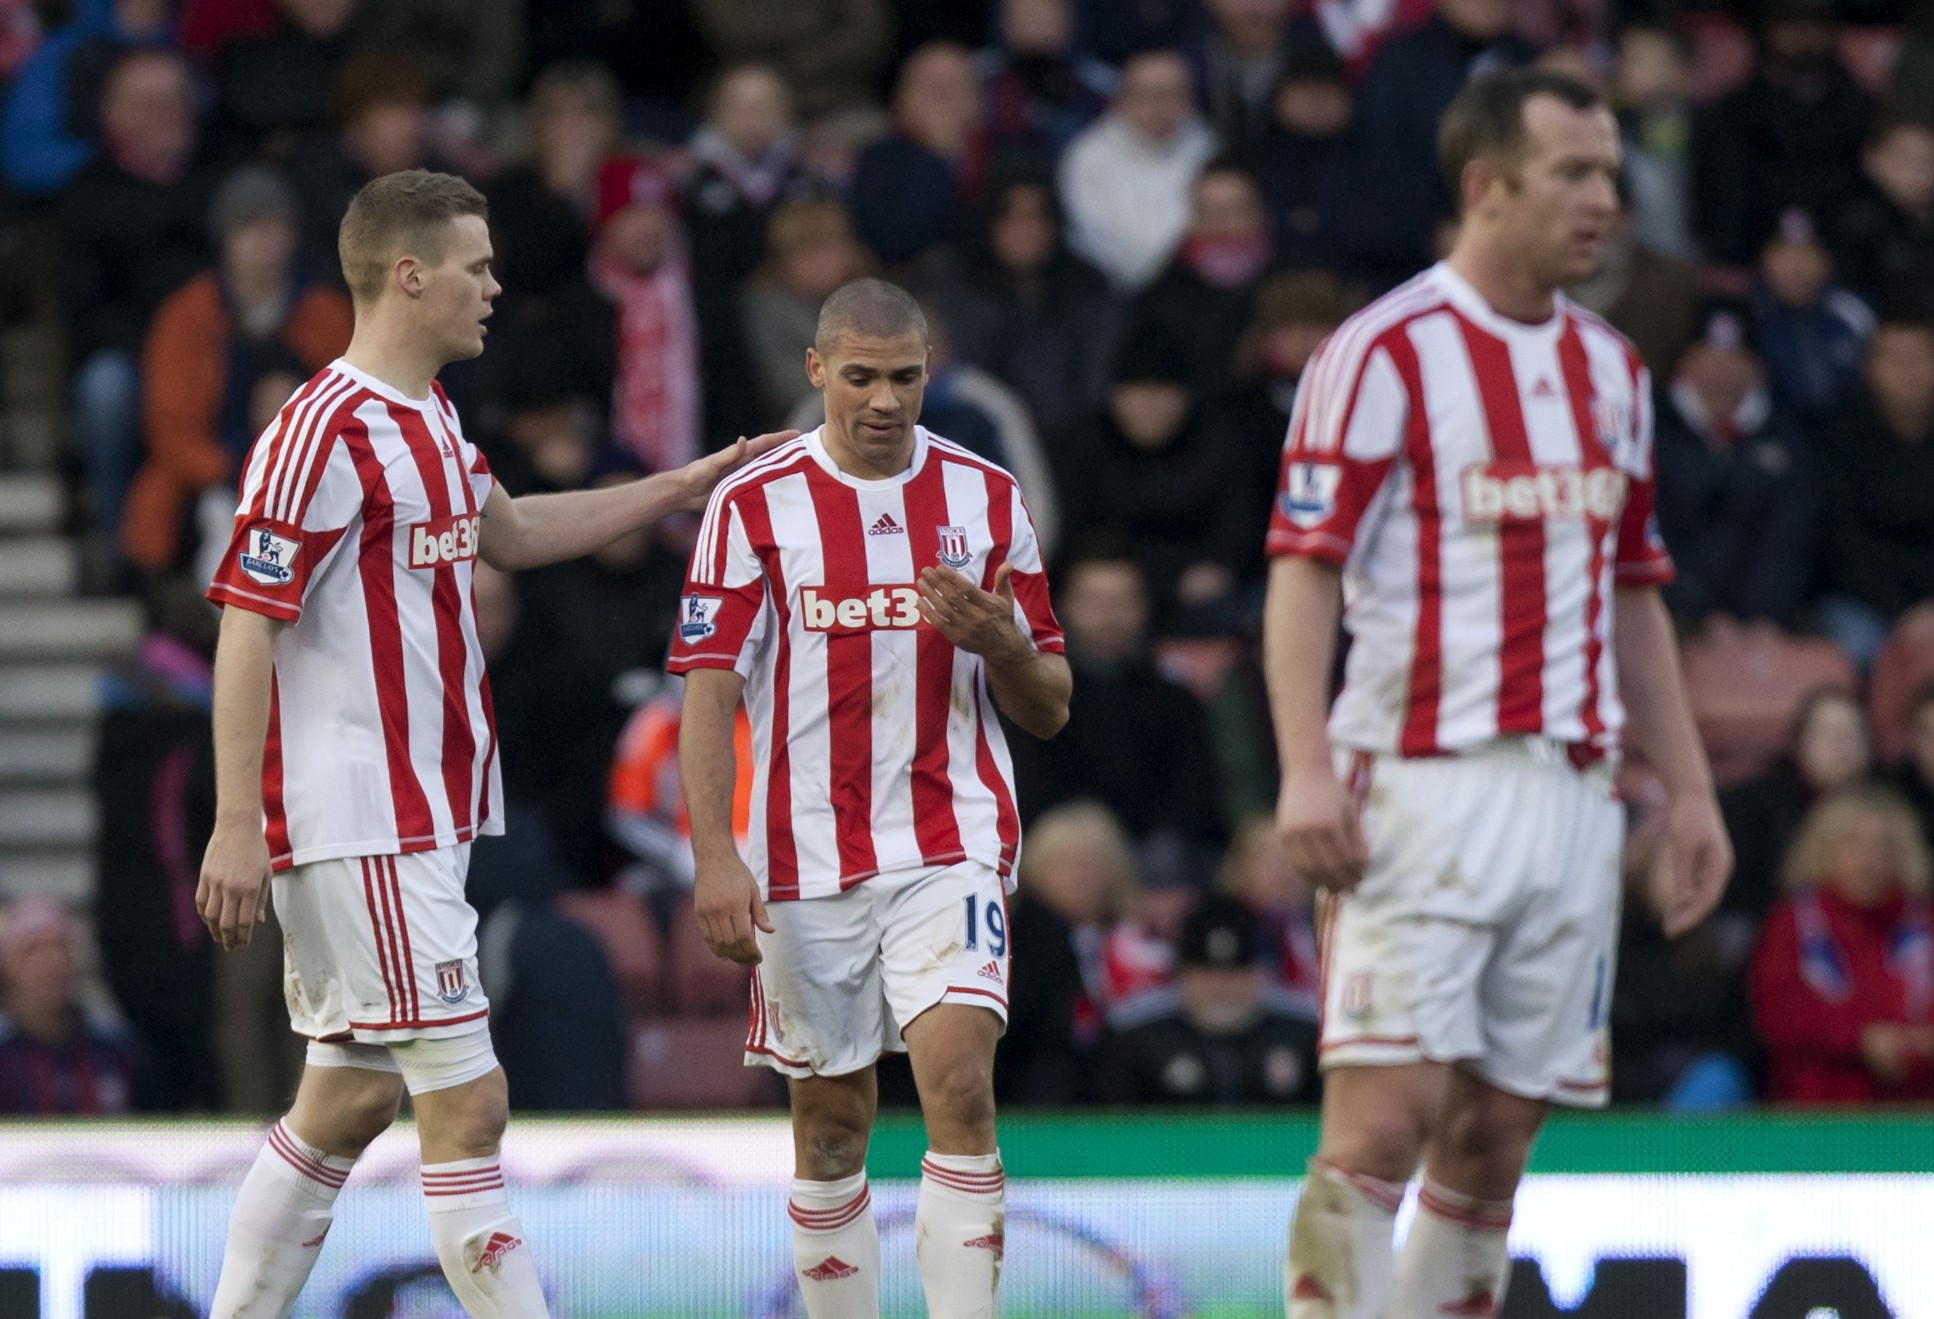 Jonathan Walters scores two own goals and misses penalty as Chelsea crush Stoke